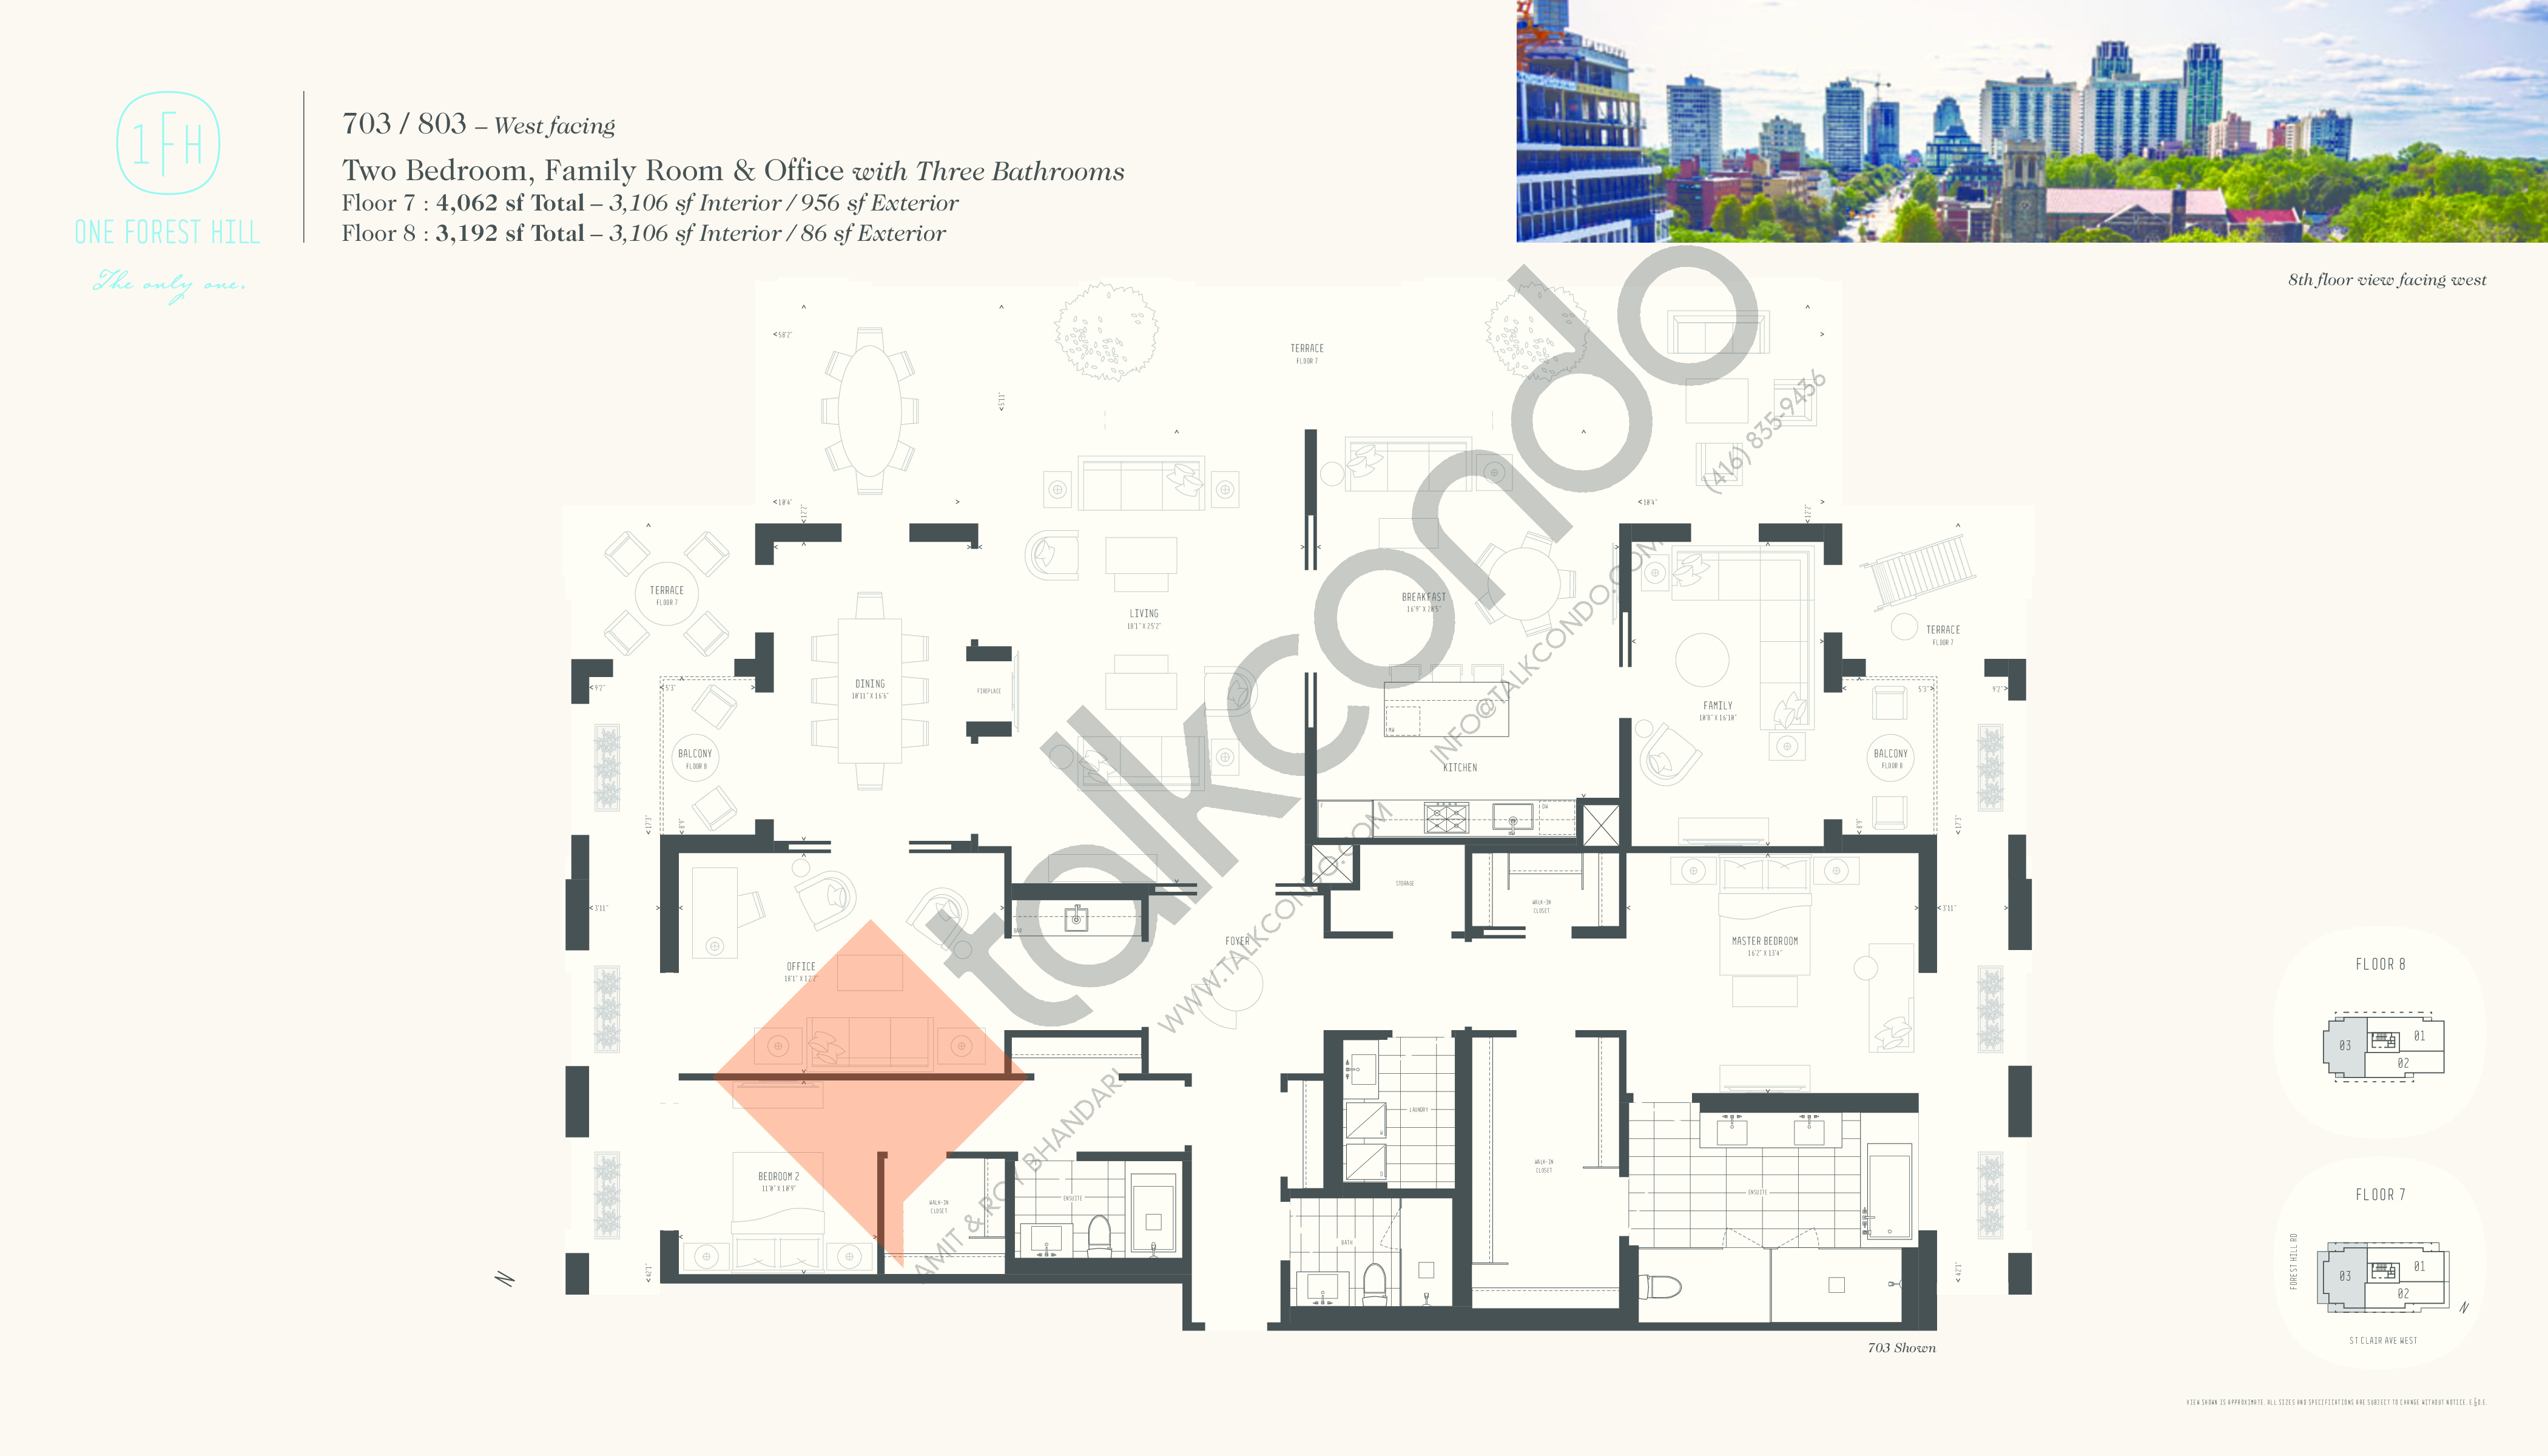 703 / 803 Floor Plan at One Forest Hill Condos - 3106 sq.ft